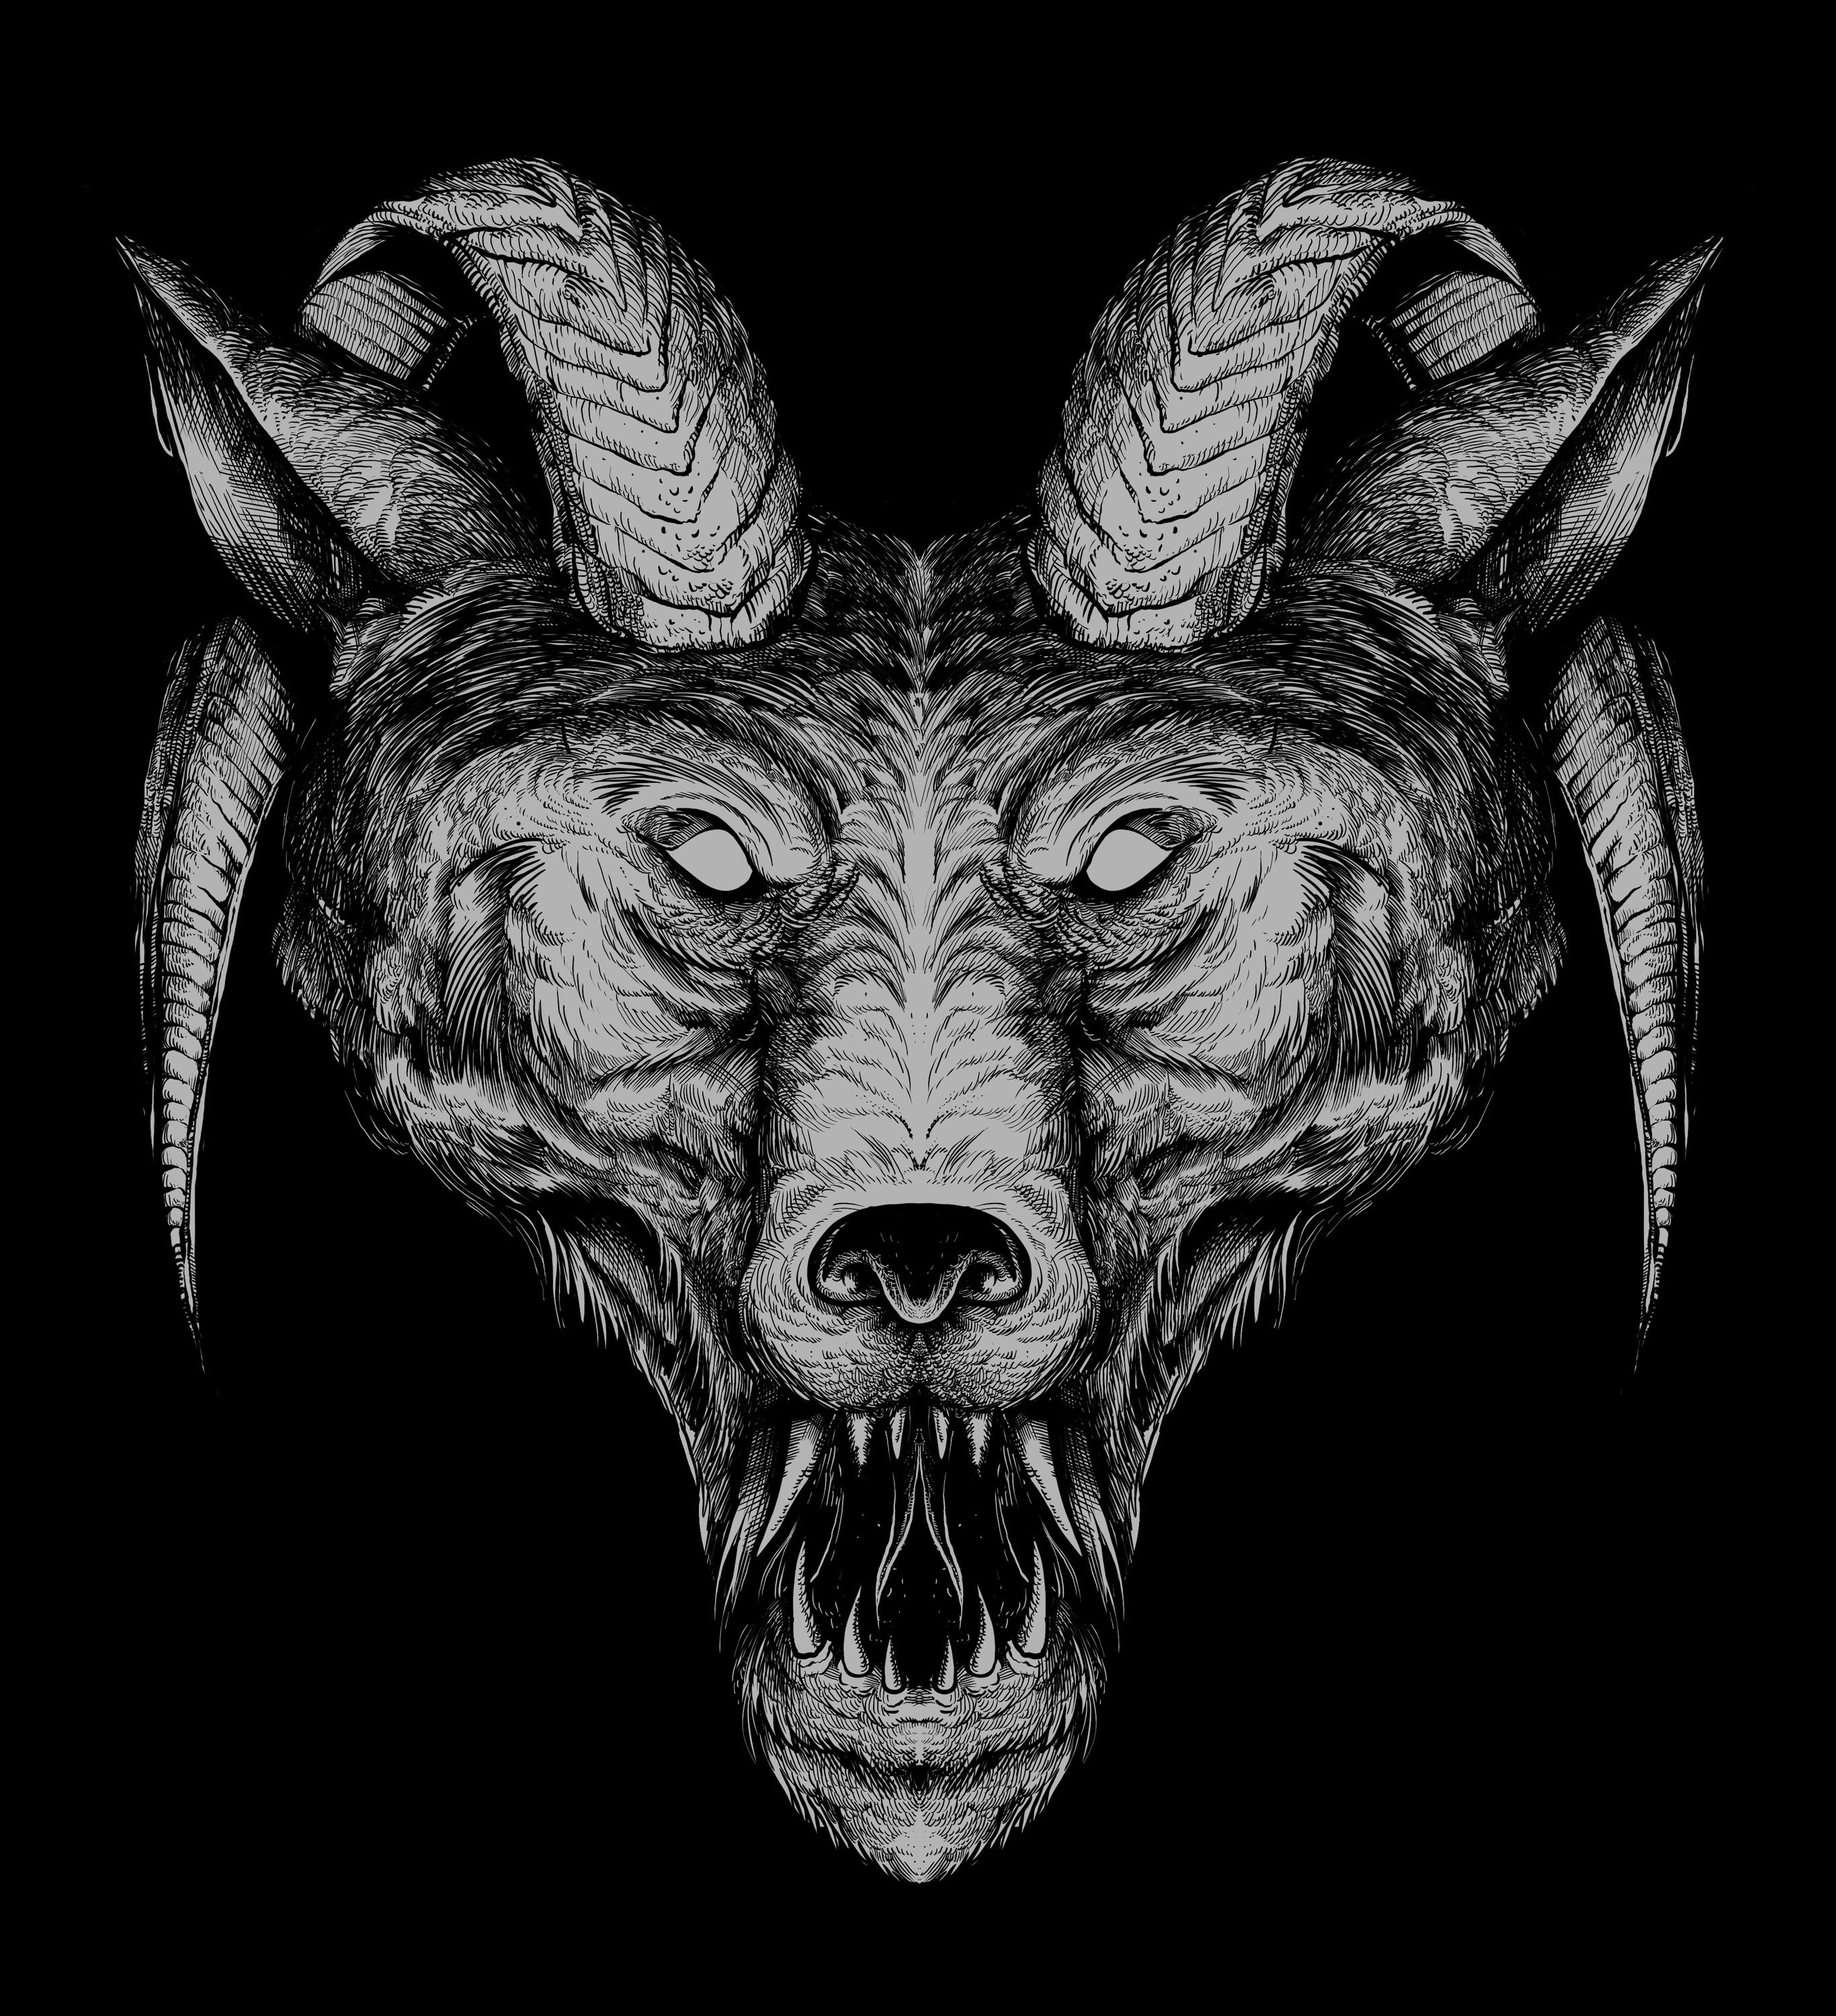 Satan wolf - designed by Giovanni Tamponi illustrations